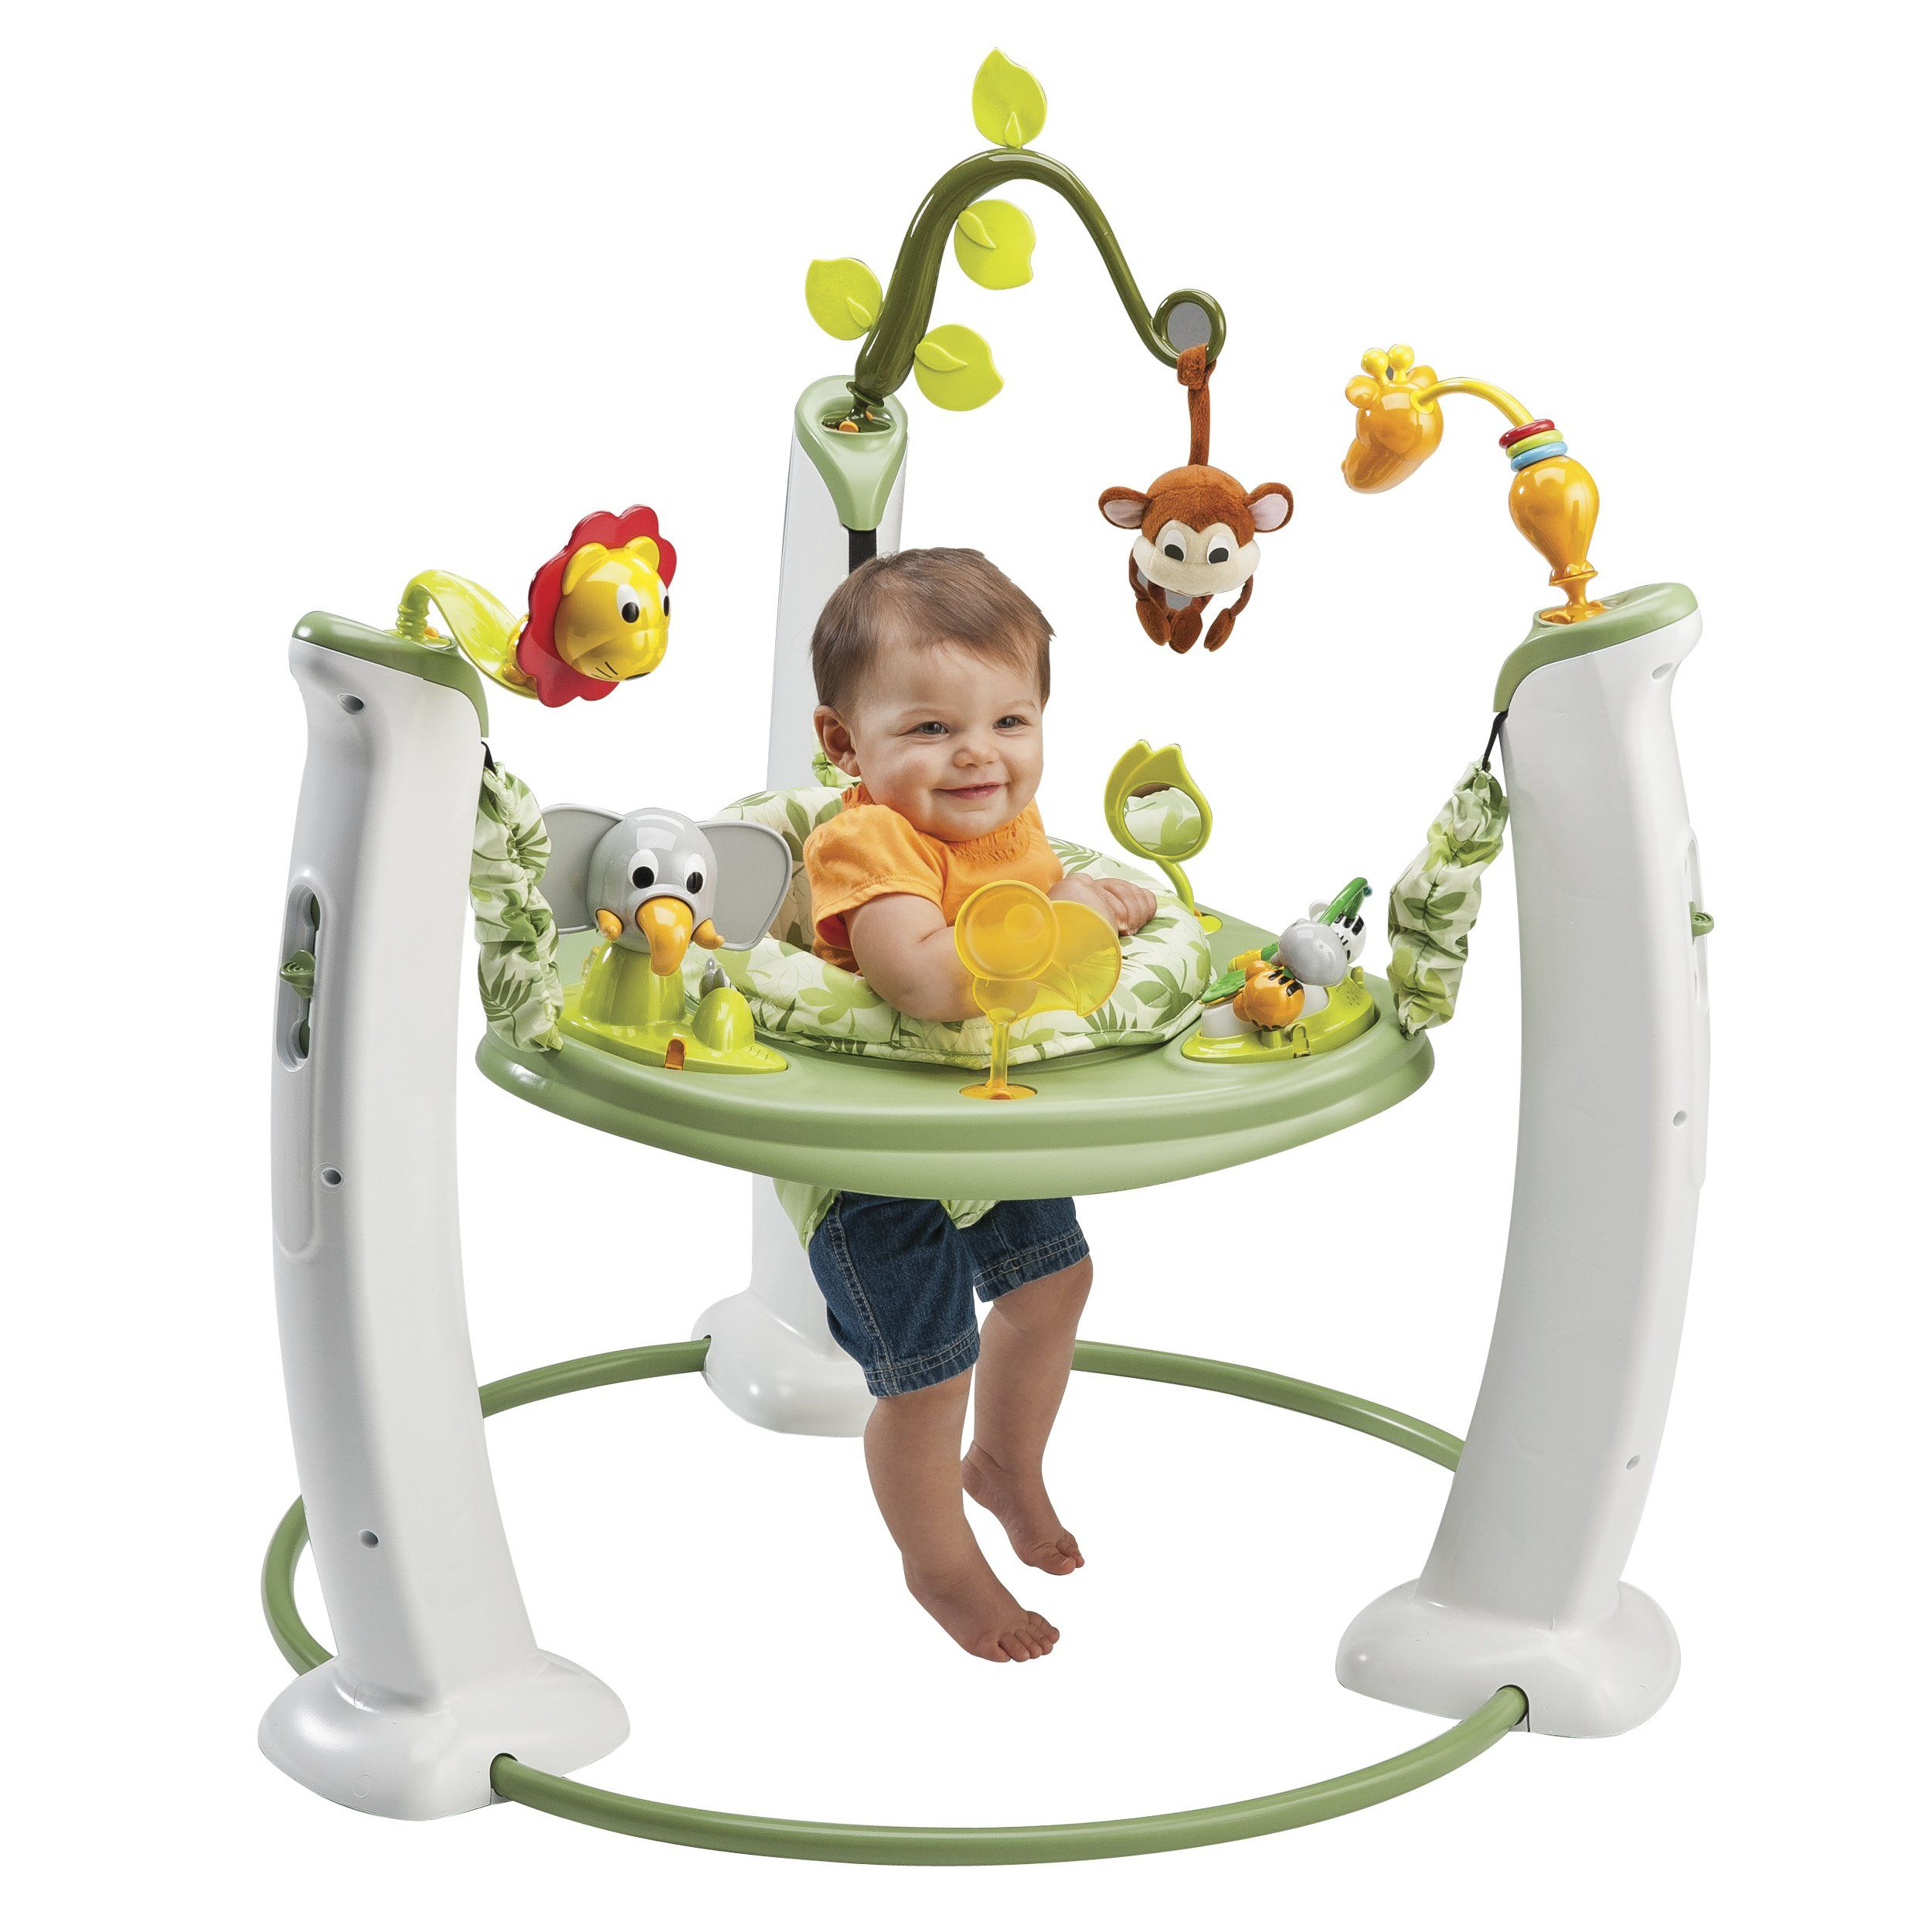 amazoncom  evenflo exersaucer jump  learn stationary jumper  - evenflo exersaucer jump and learn stationary jumper safari friends